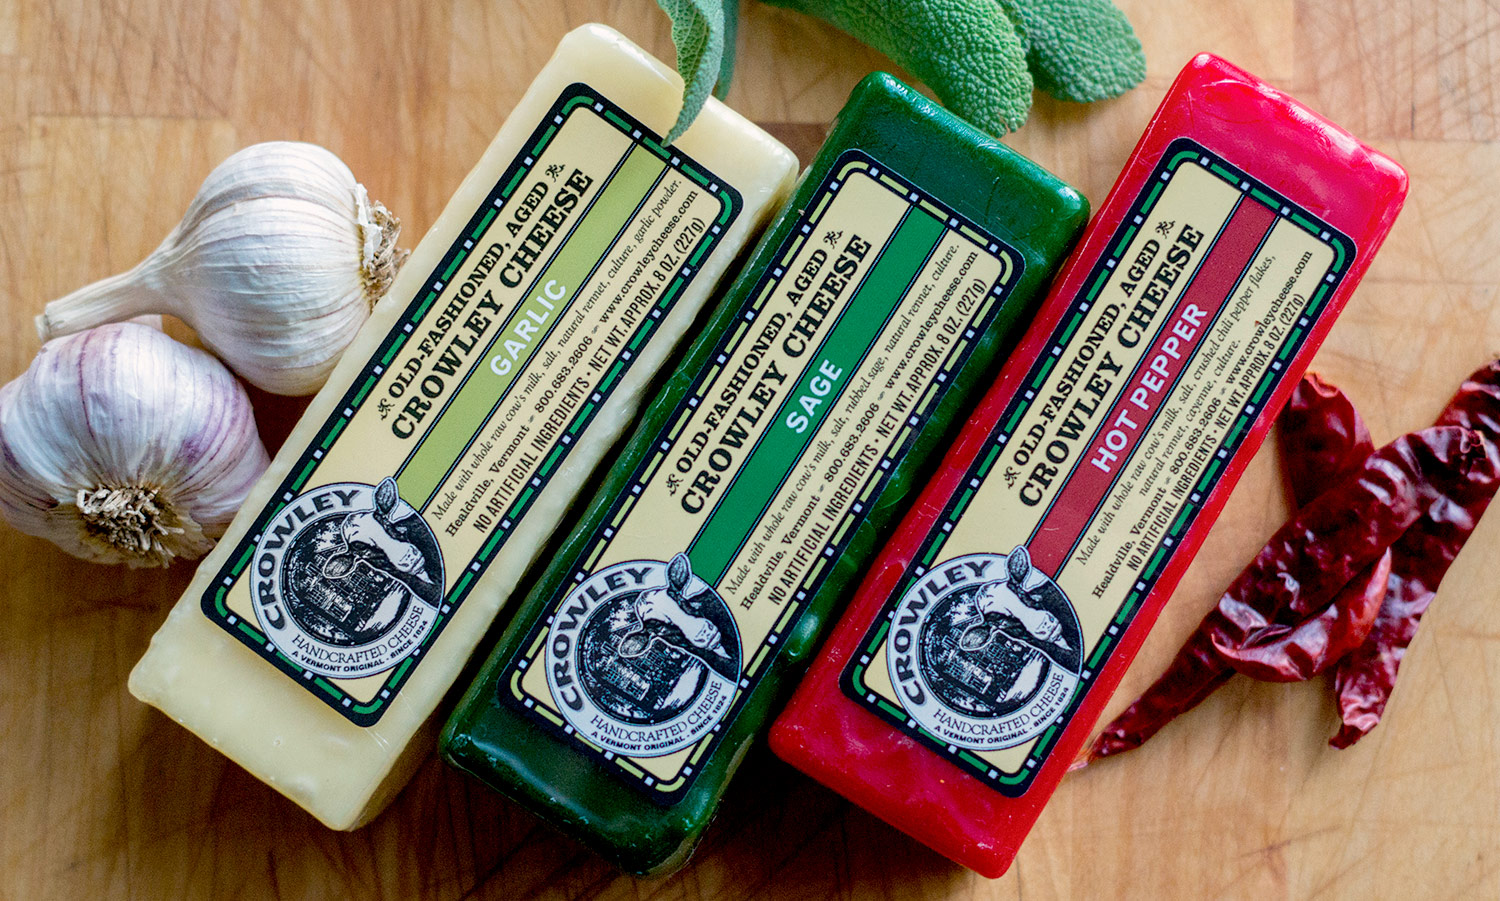 Crowley Cheese Labels